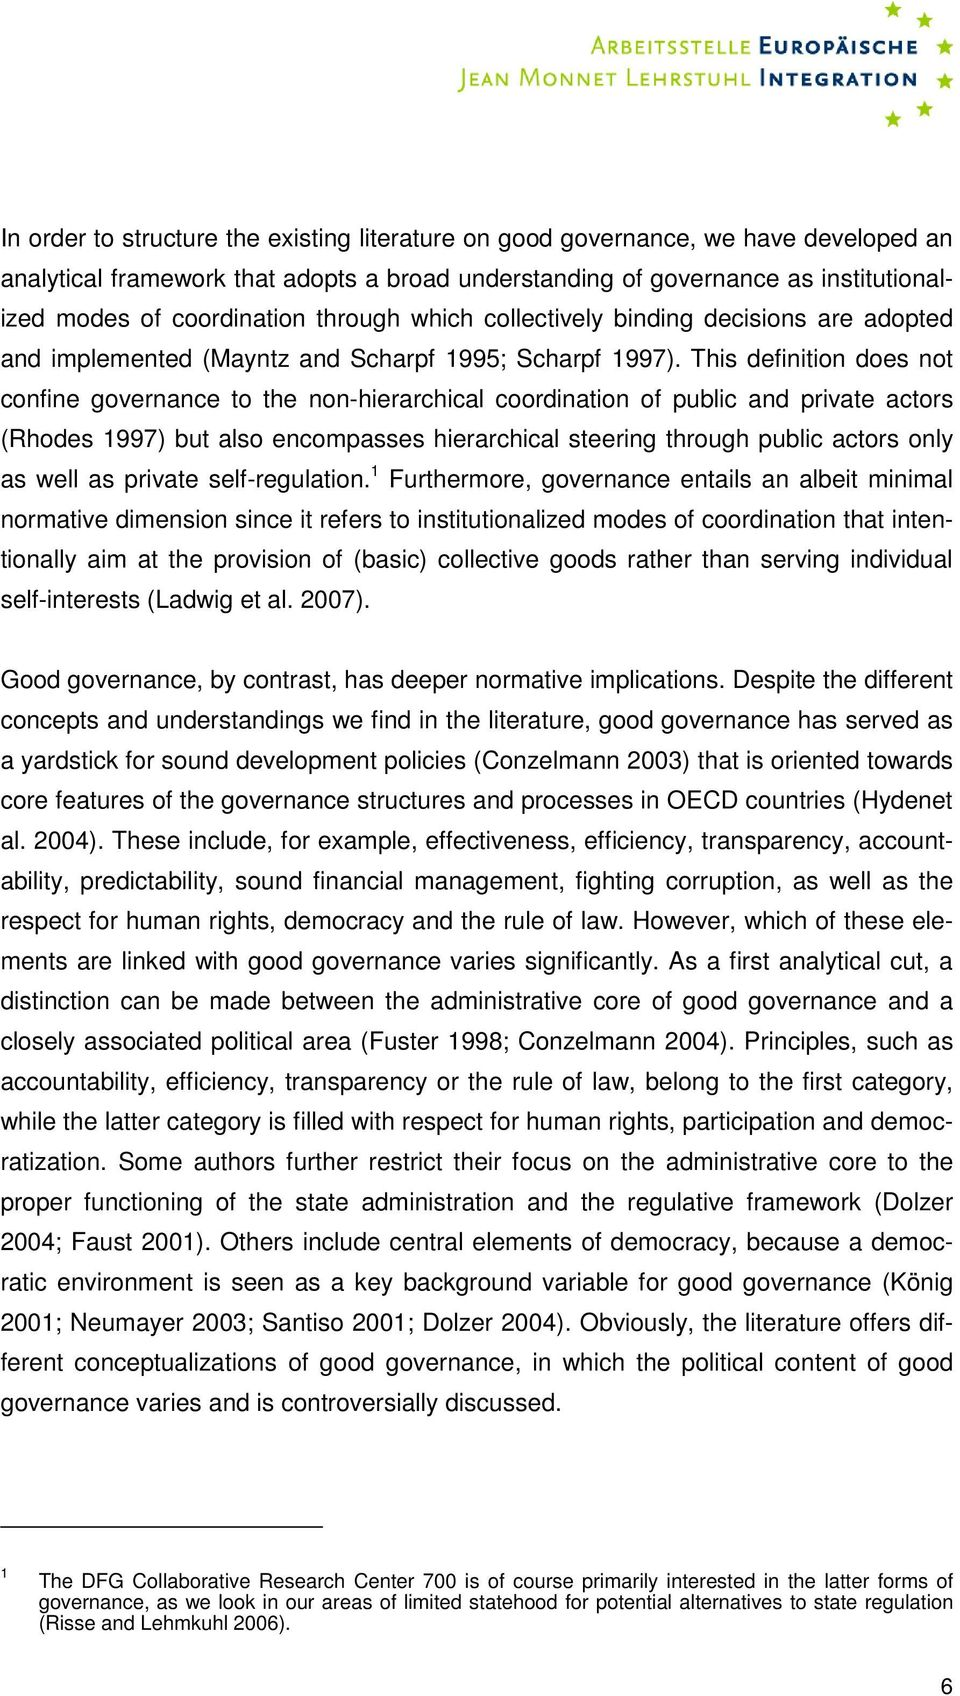 This definition does not confine governance to the non-hierarchical coordination of public and private actors (Rhodes 1997) but also encompasses hierarchical steering through public actors only as